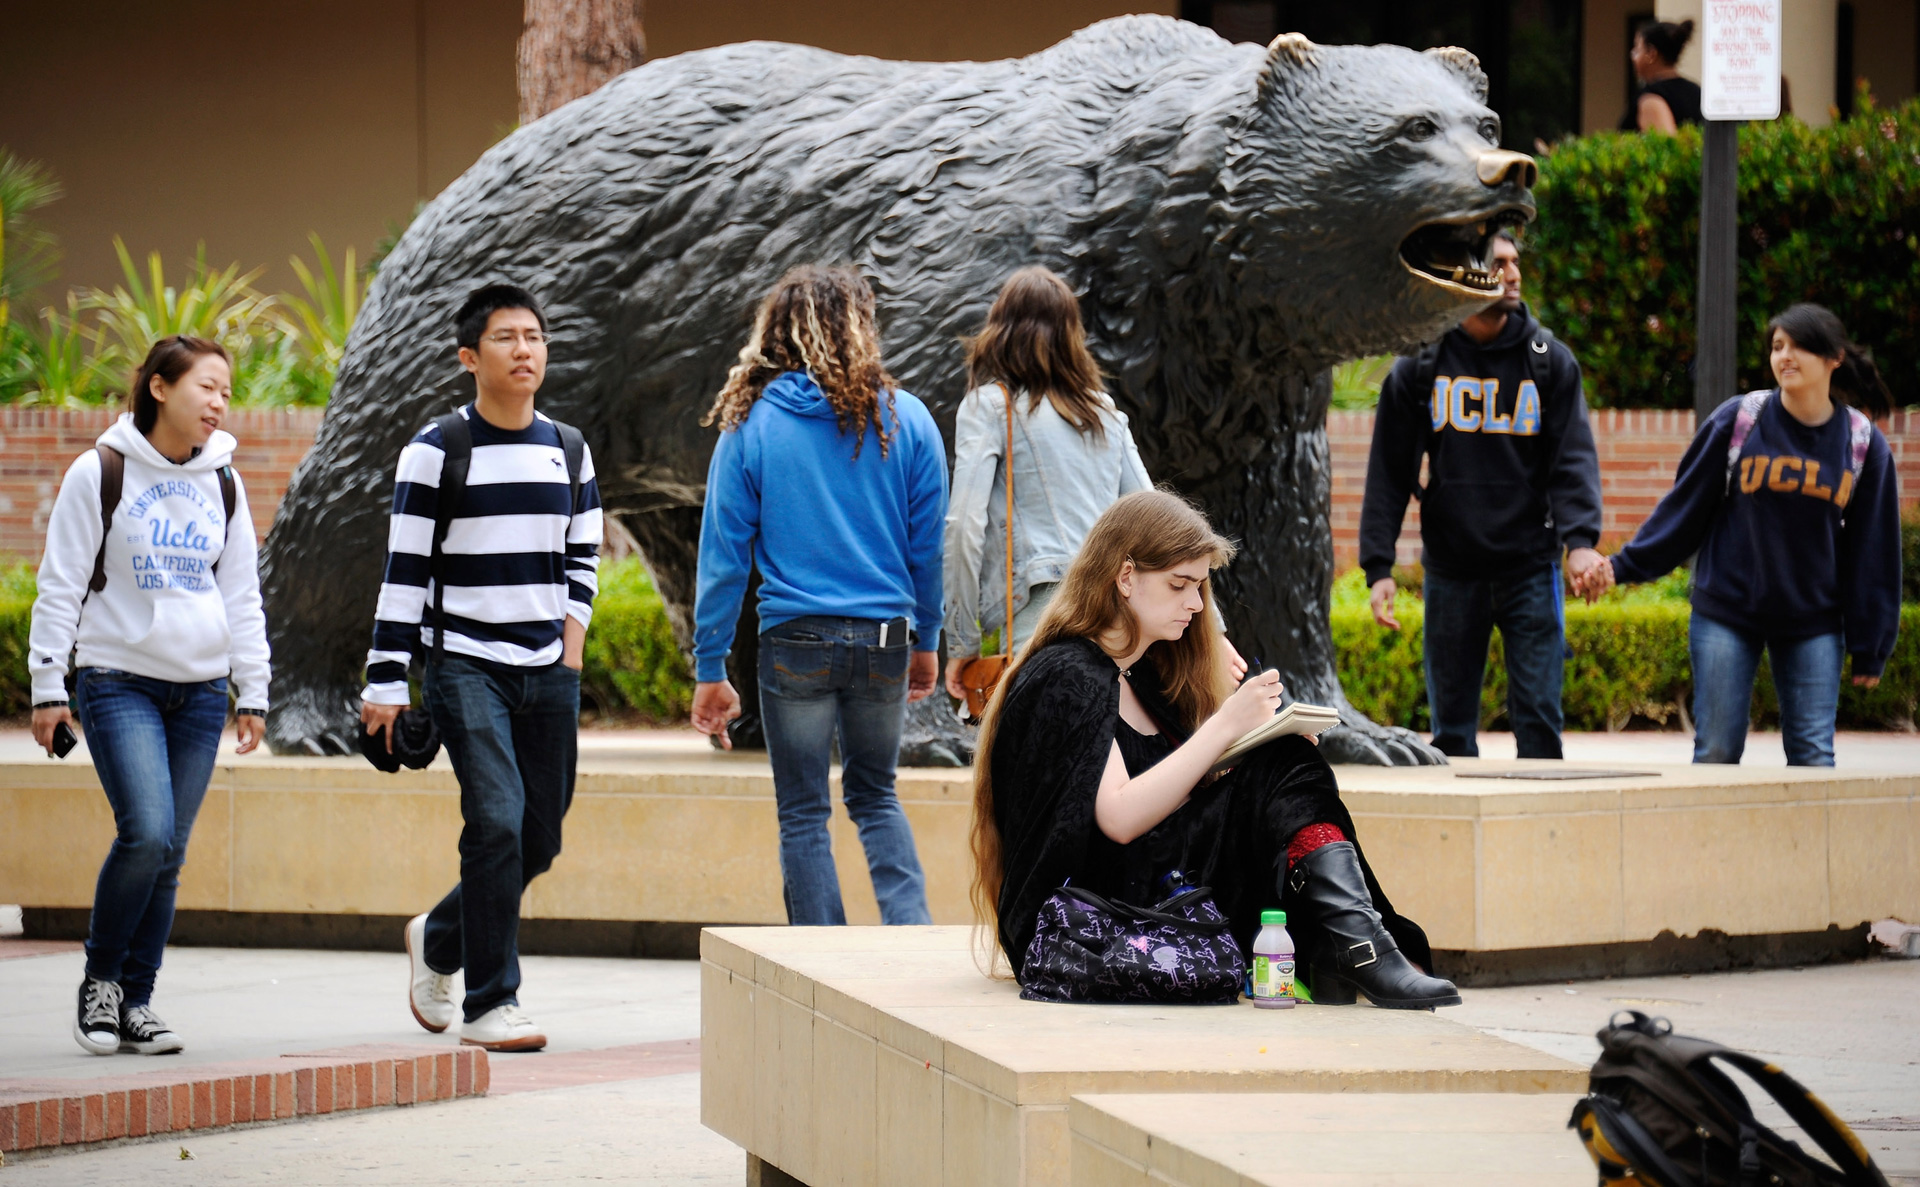 Students walk near the Bruin Bear statue on the UCLA campus.